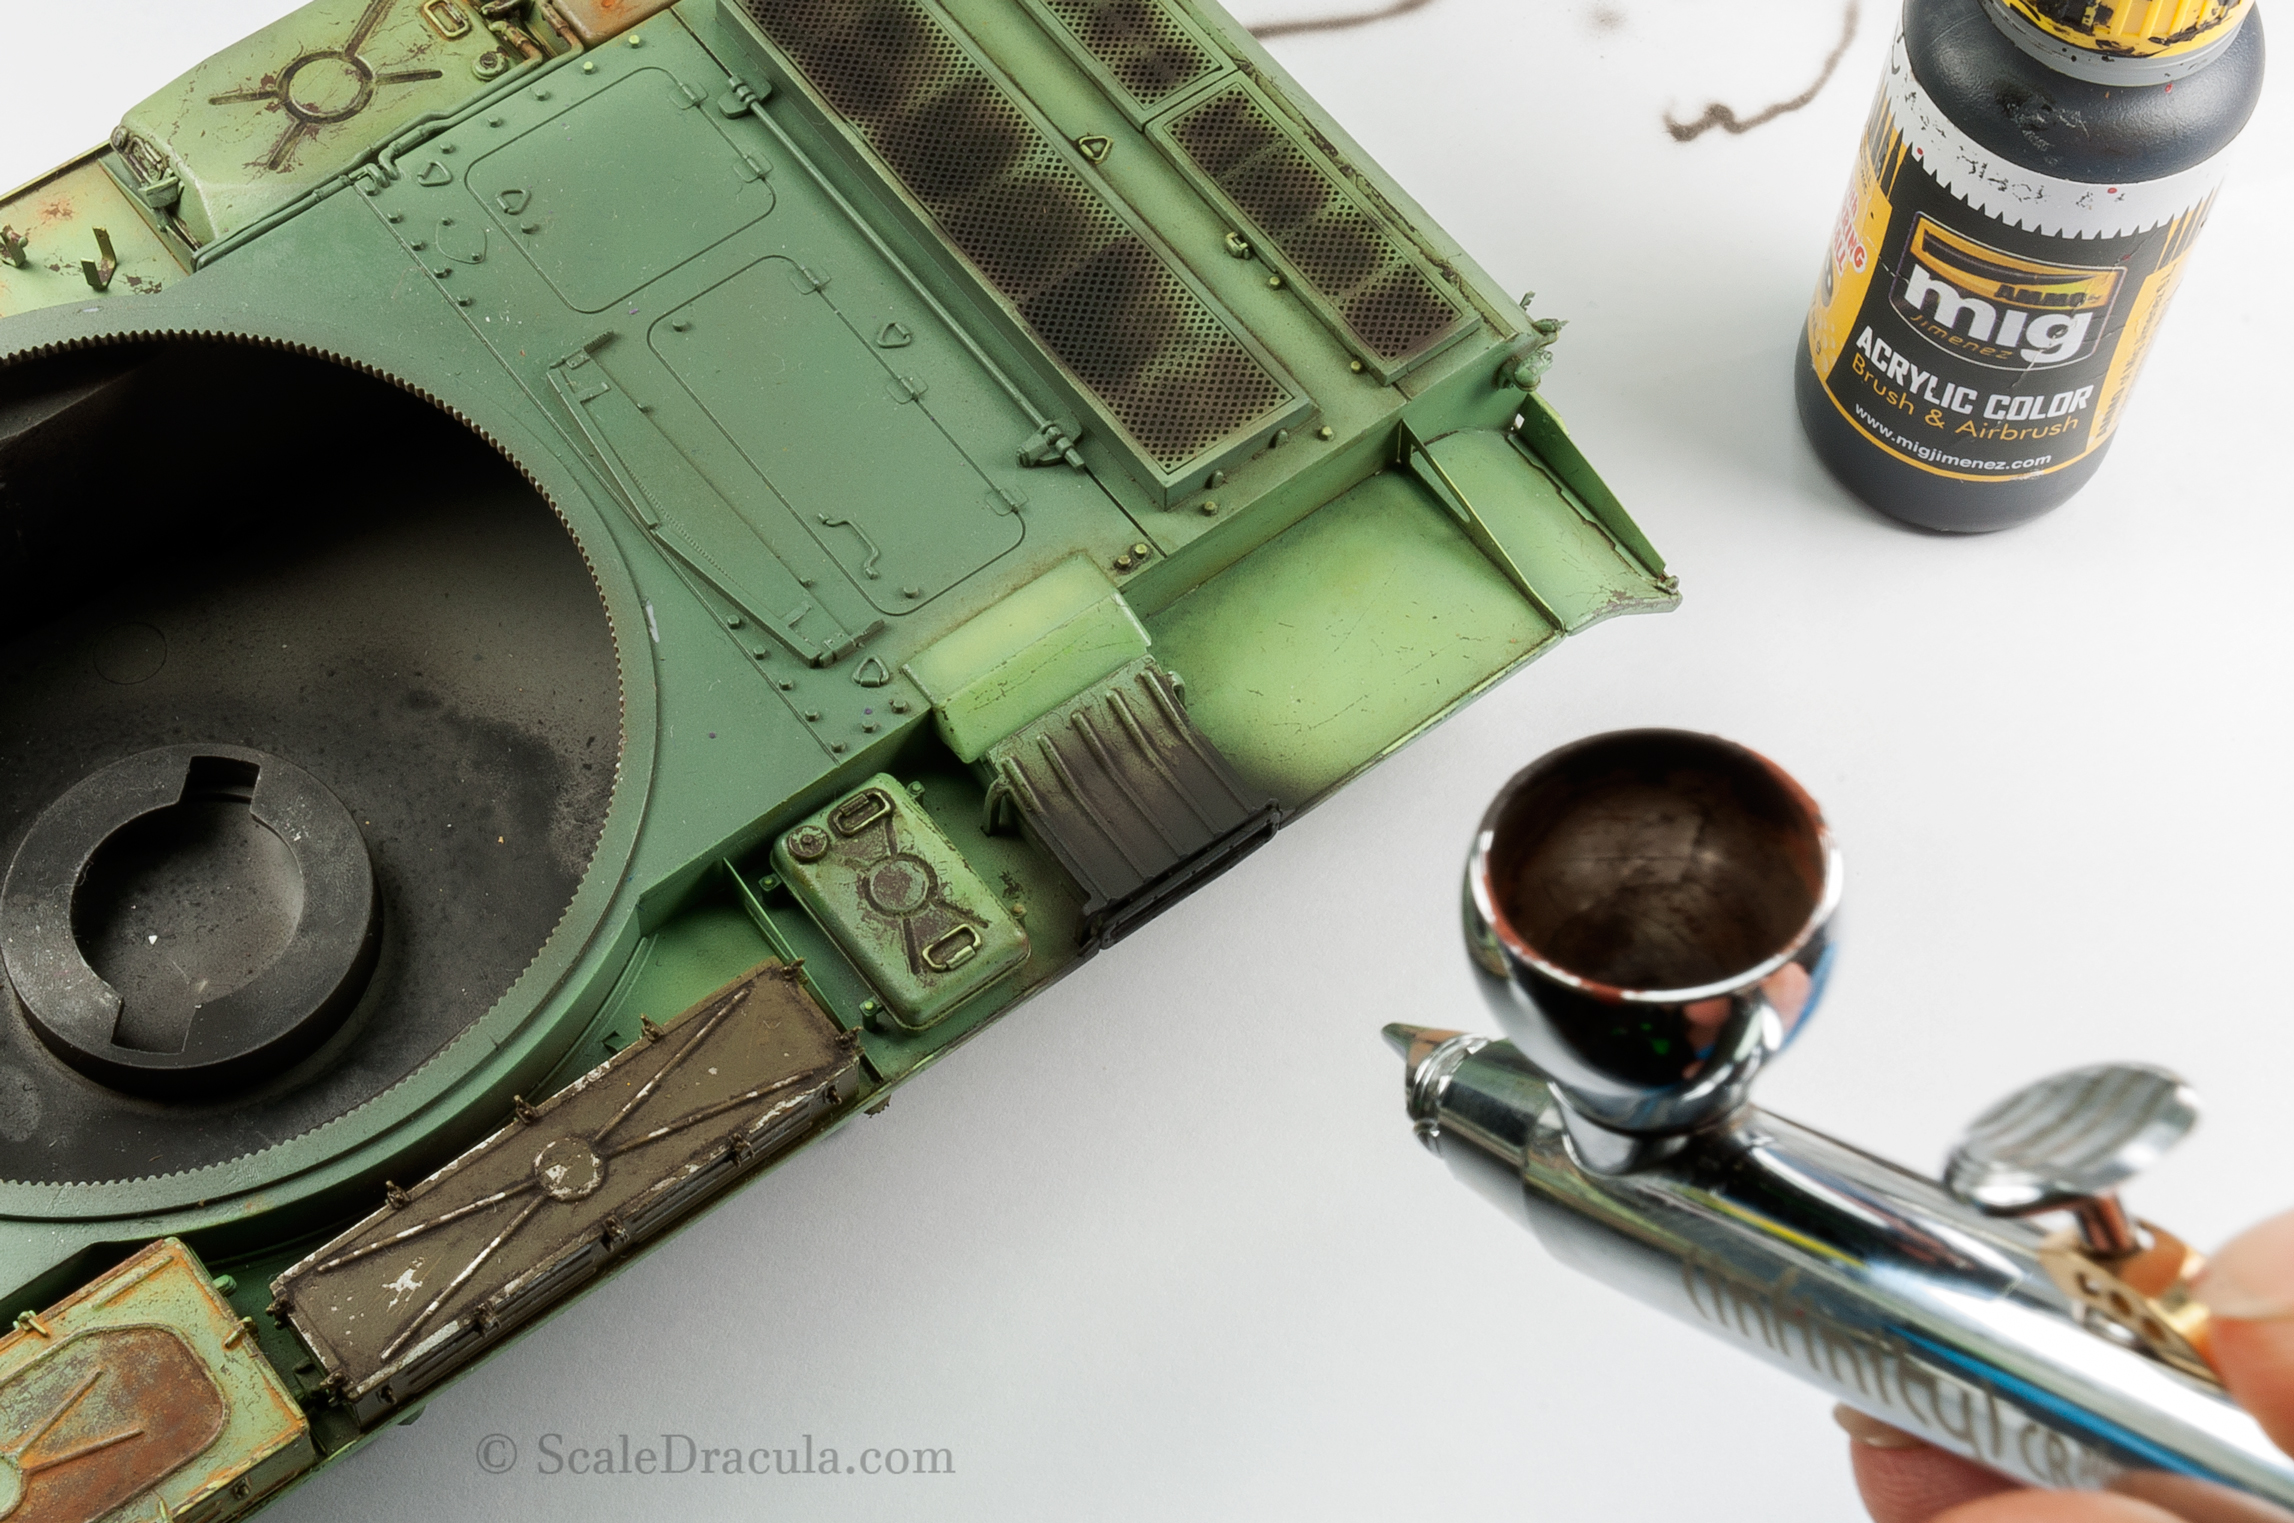 Painting the exhaust, ZSU-57 by TAKOM